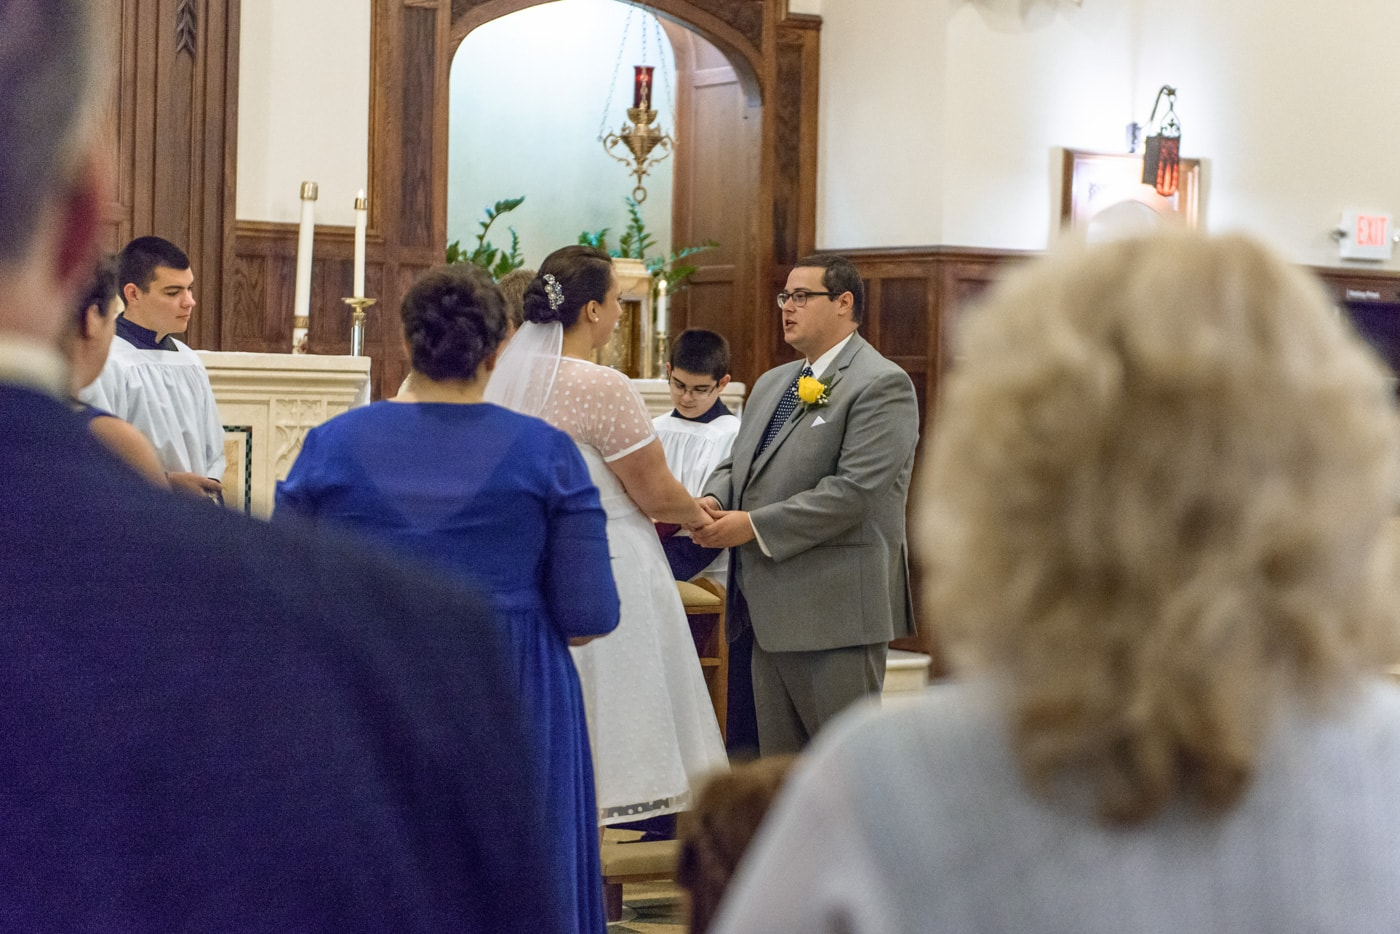 The bride and groom hold hands in front of the altar during their wedding ceremony at St James Catholic Church in Falls Church, Virginia